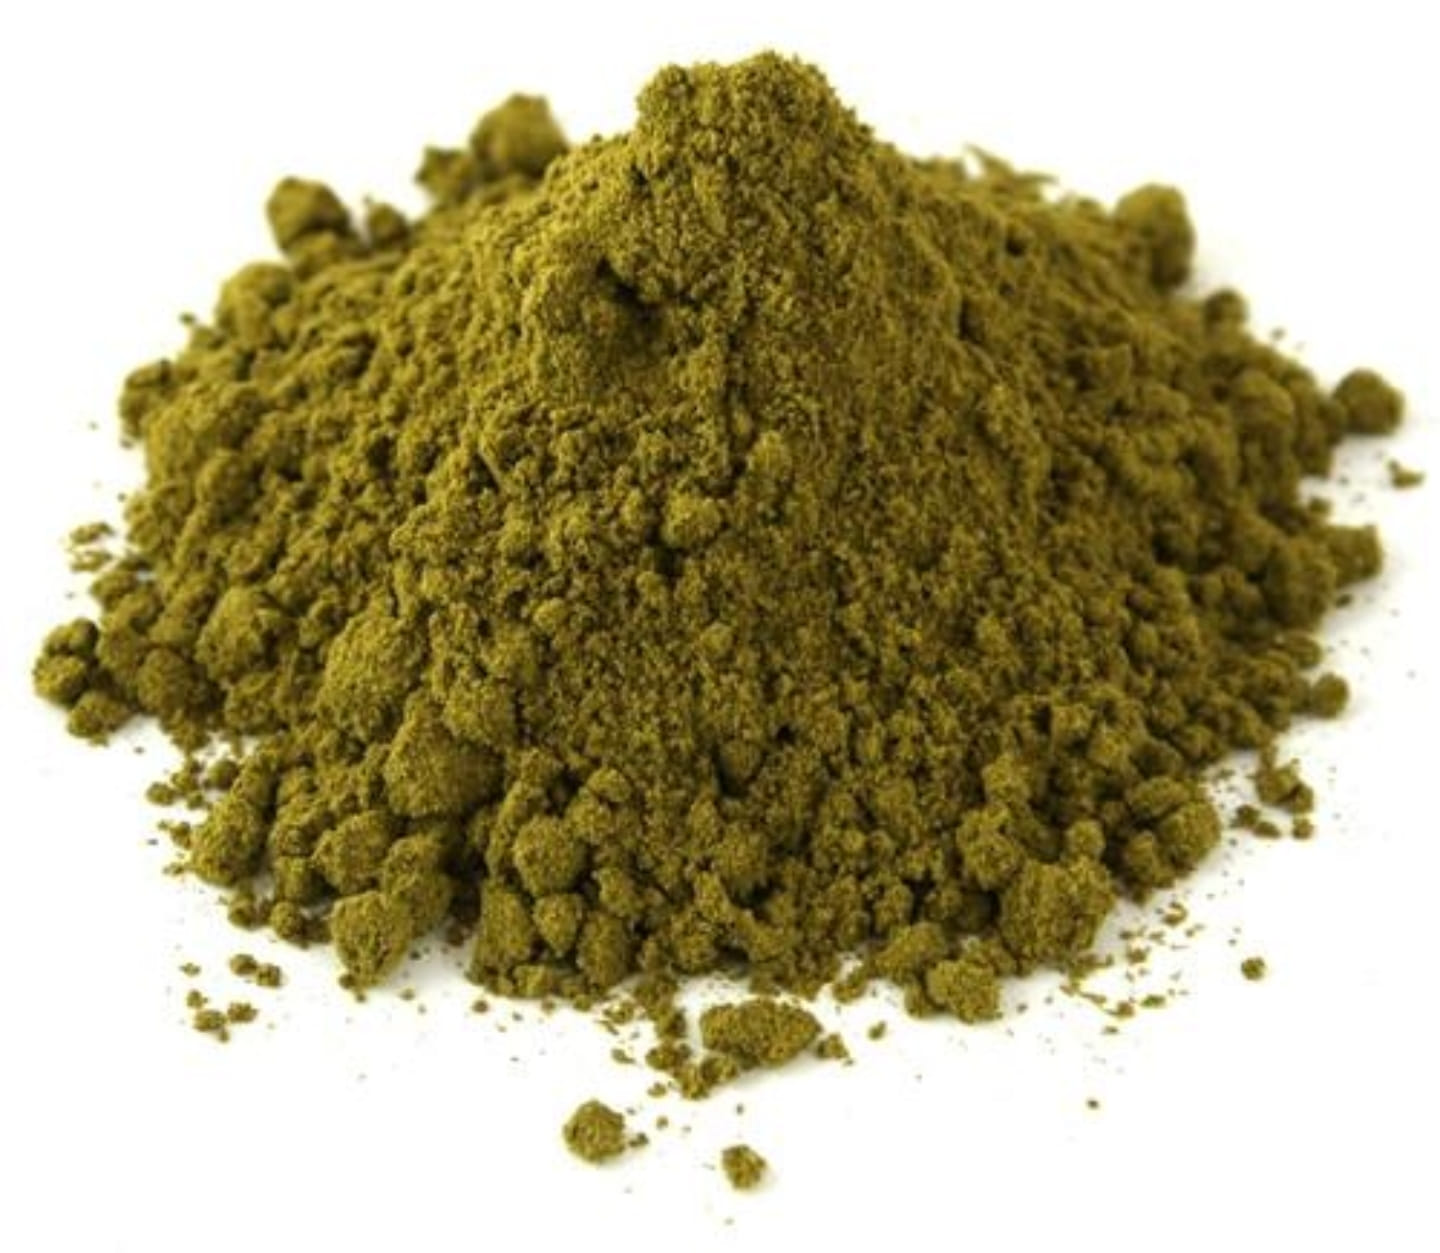 Hemp Protein + Flour - Benefits: Most absorbable Protein in the Plant Kingdom, Fibre in Fibre, GMO Free, Pesticide Free, Nut Free, Gluten Free, Dairy FreeUses: Sport Supplement, Breads, Pancakes, Muffins, Cookies, Granola Bars, Pasta Noodles, Wraps, Skin Care, Beverages